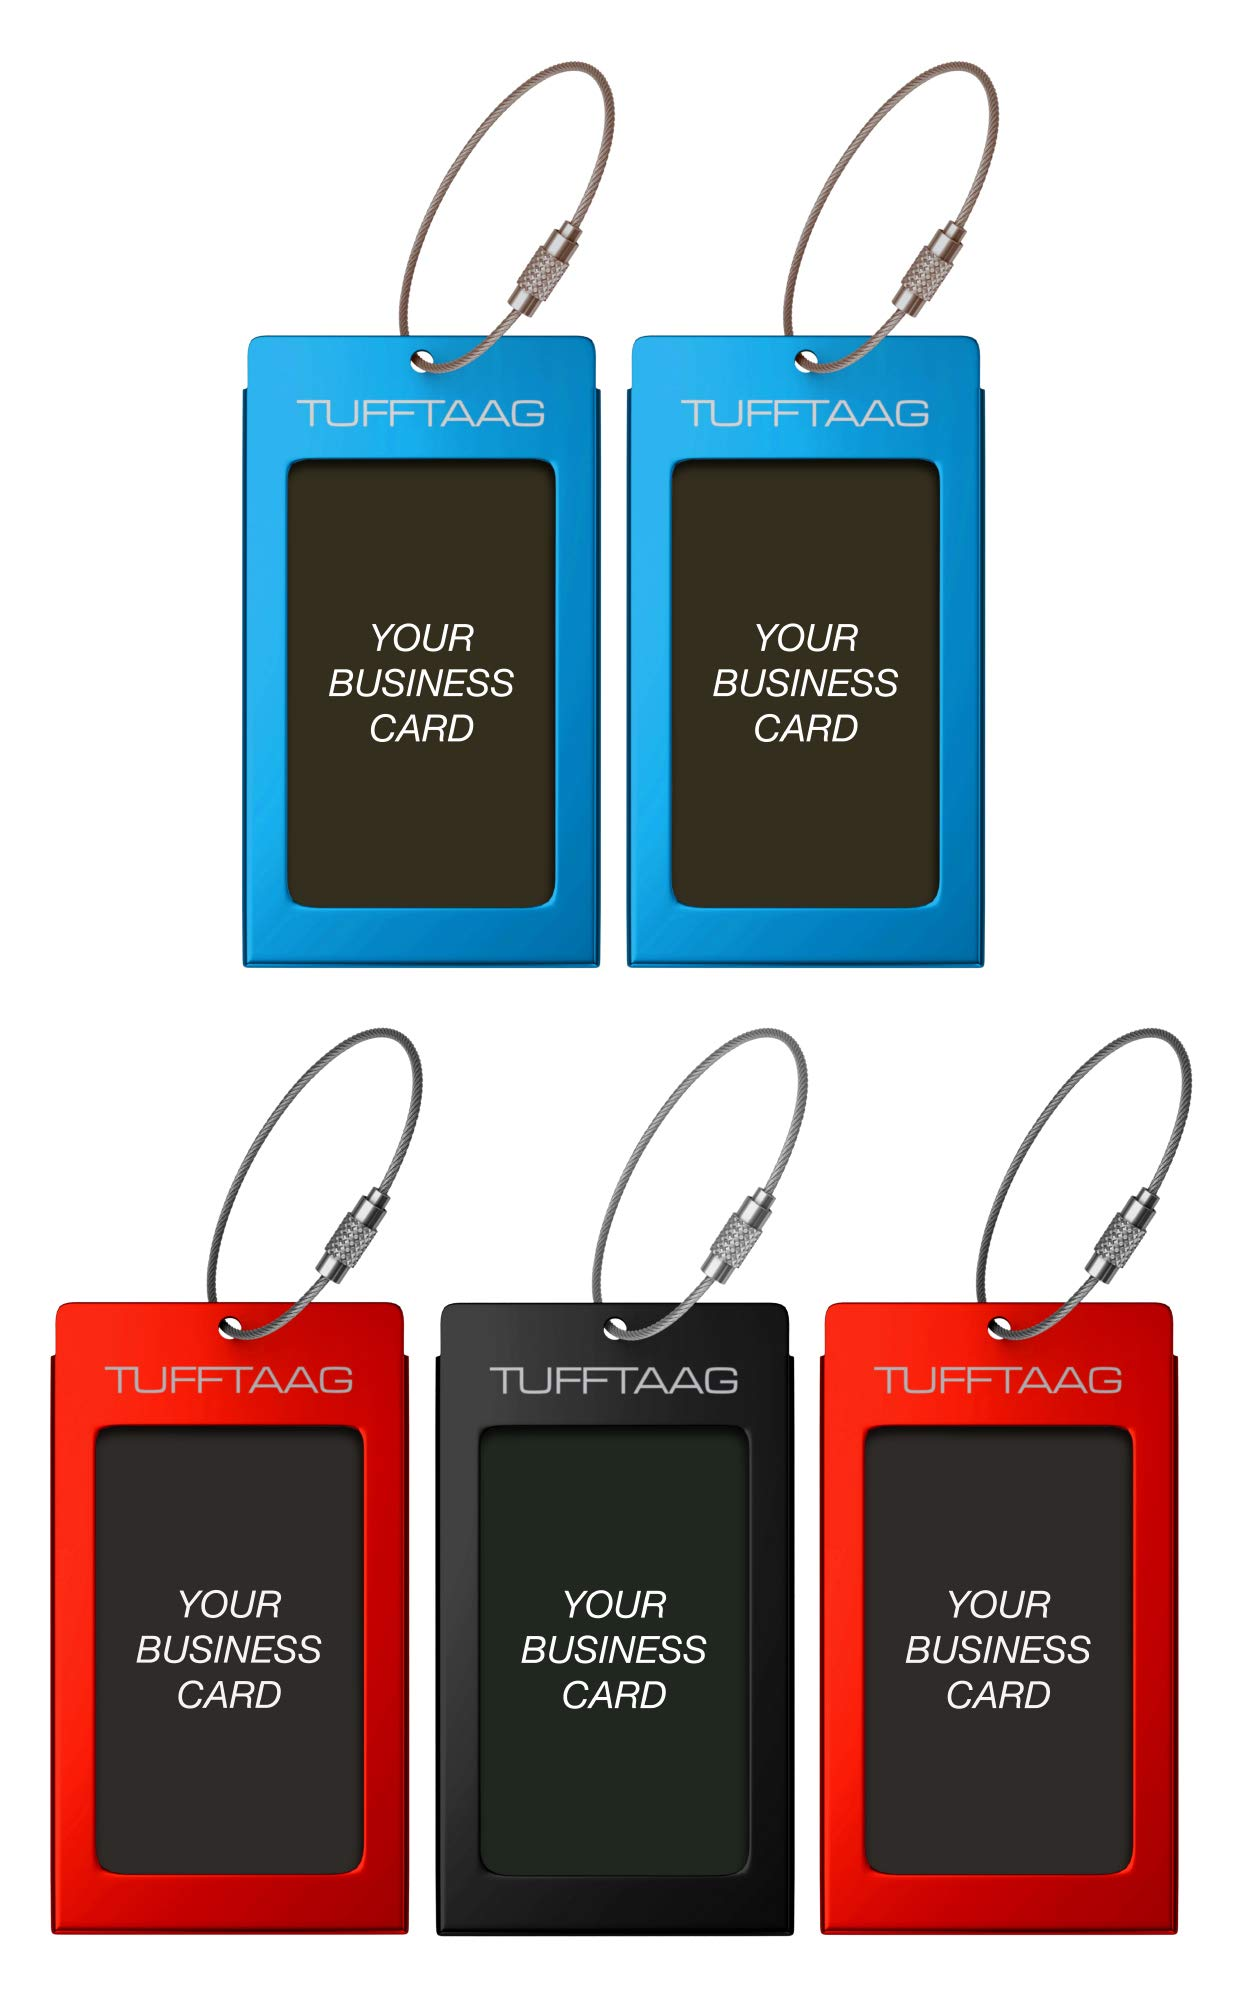 Luggage Tags TUFFTAAG for Business Cards, Metal Suitcase Labels, 5 Pack Bundle (2 Blue, 2 Red, 1 Black)